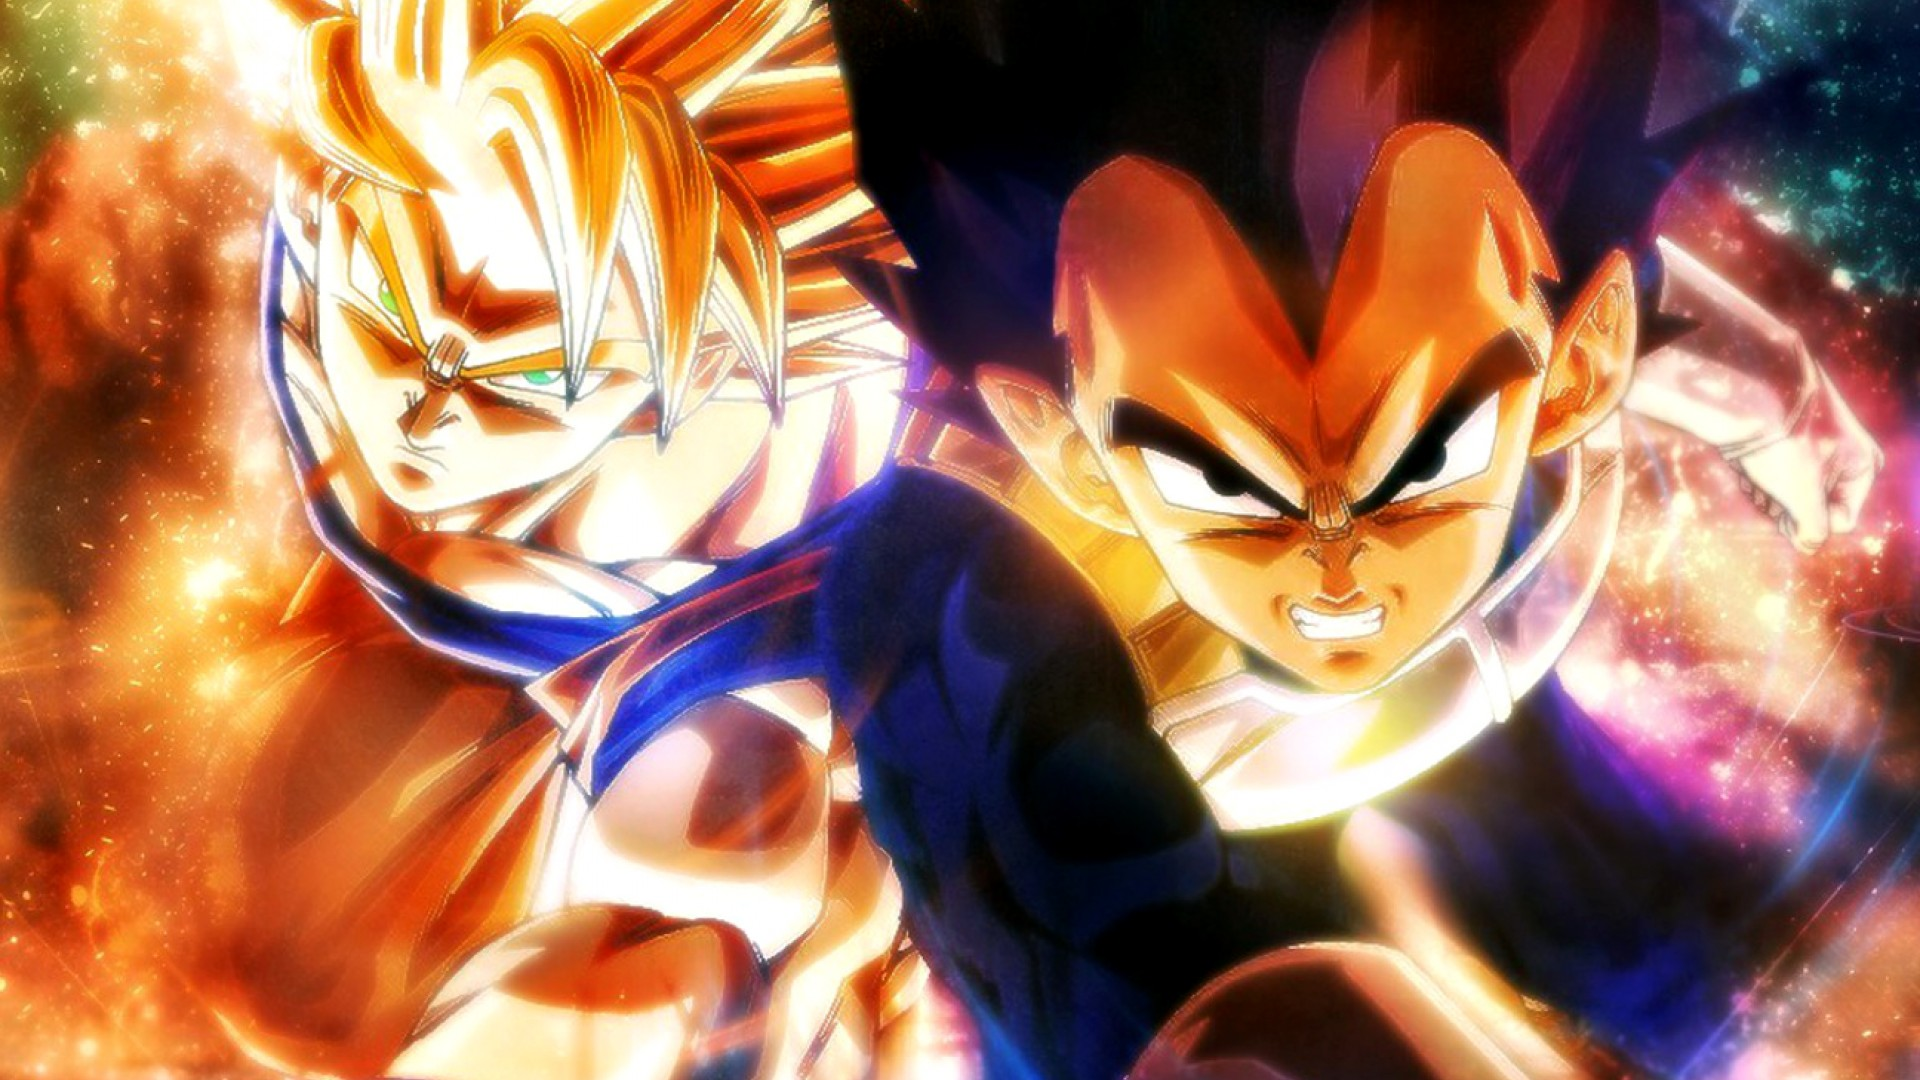 dragon ball z super saiyan wallpaper - sf wallpaper